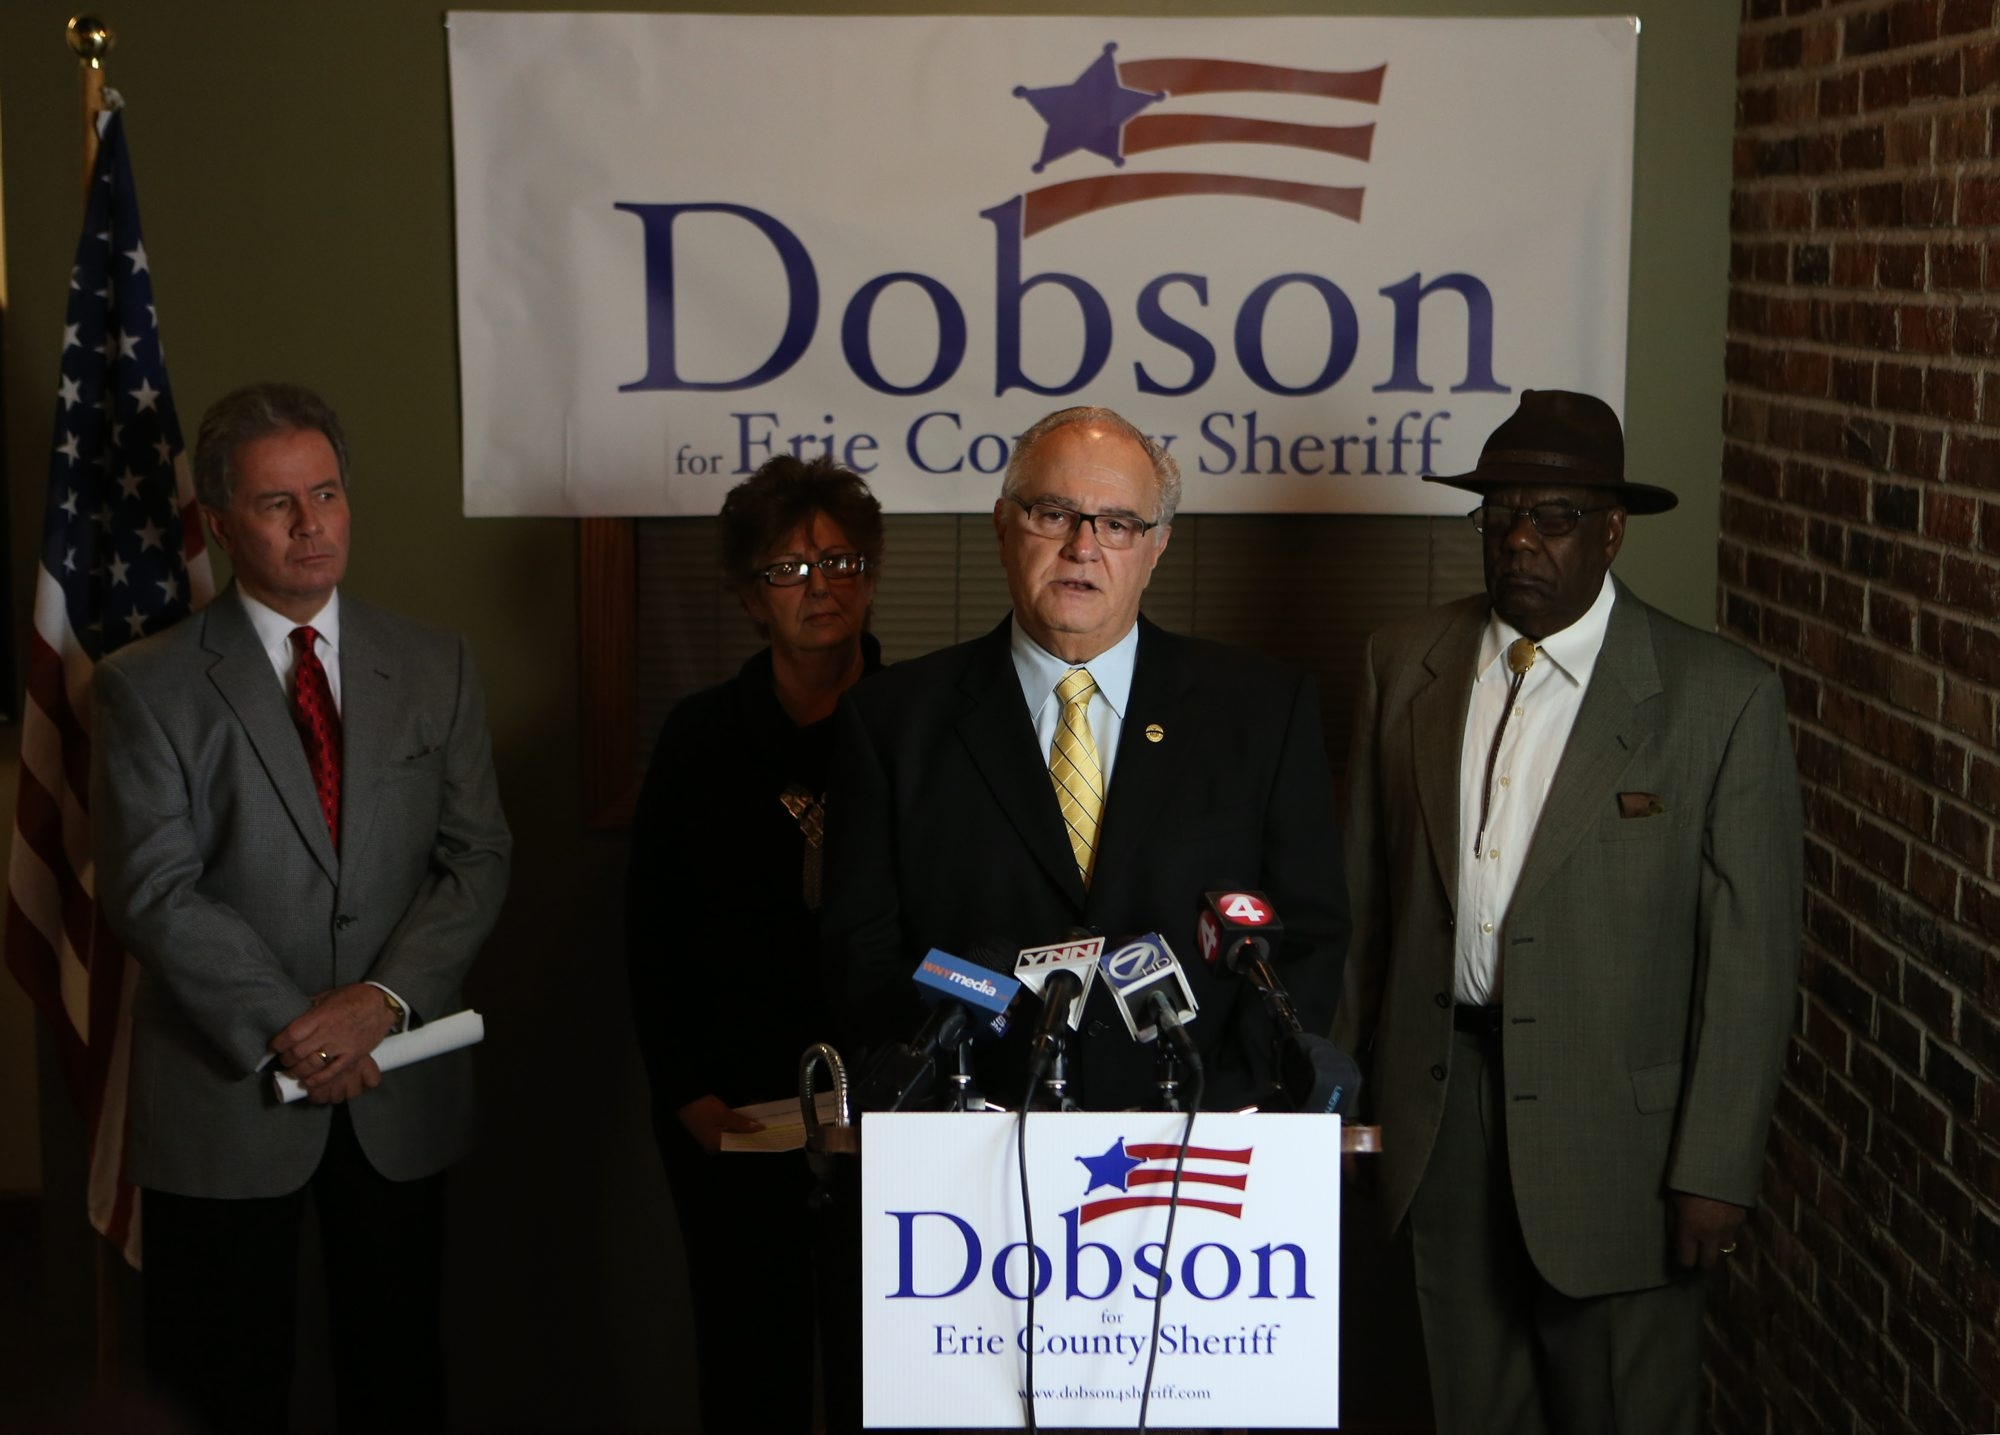 Bert D. Dunn, left, is running against Richard E. Dobson Sr., right, in the Democratic primary race for Erie County sheriff. The campaigns of both candidates have been marked by insider rivalries.